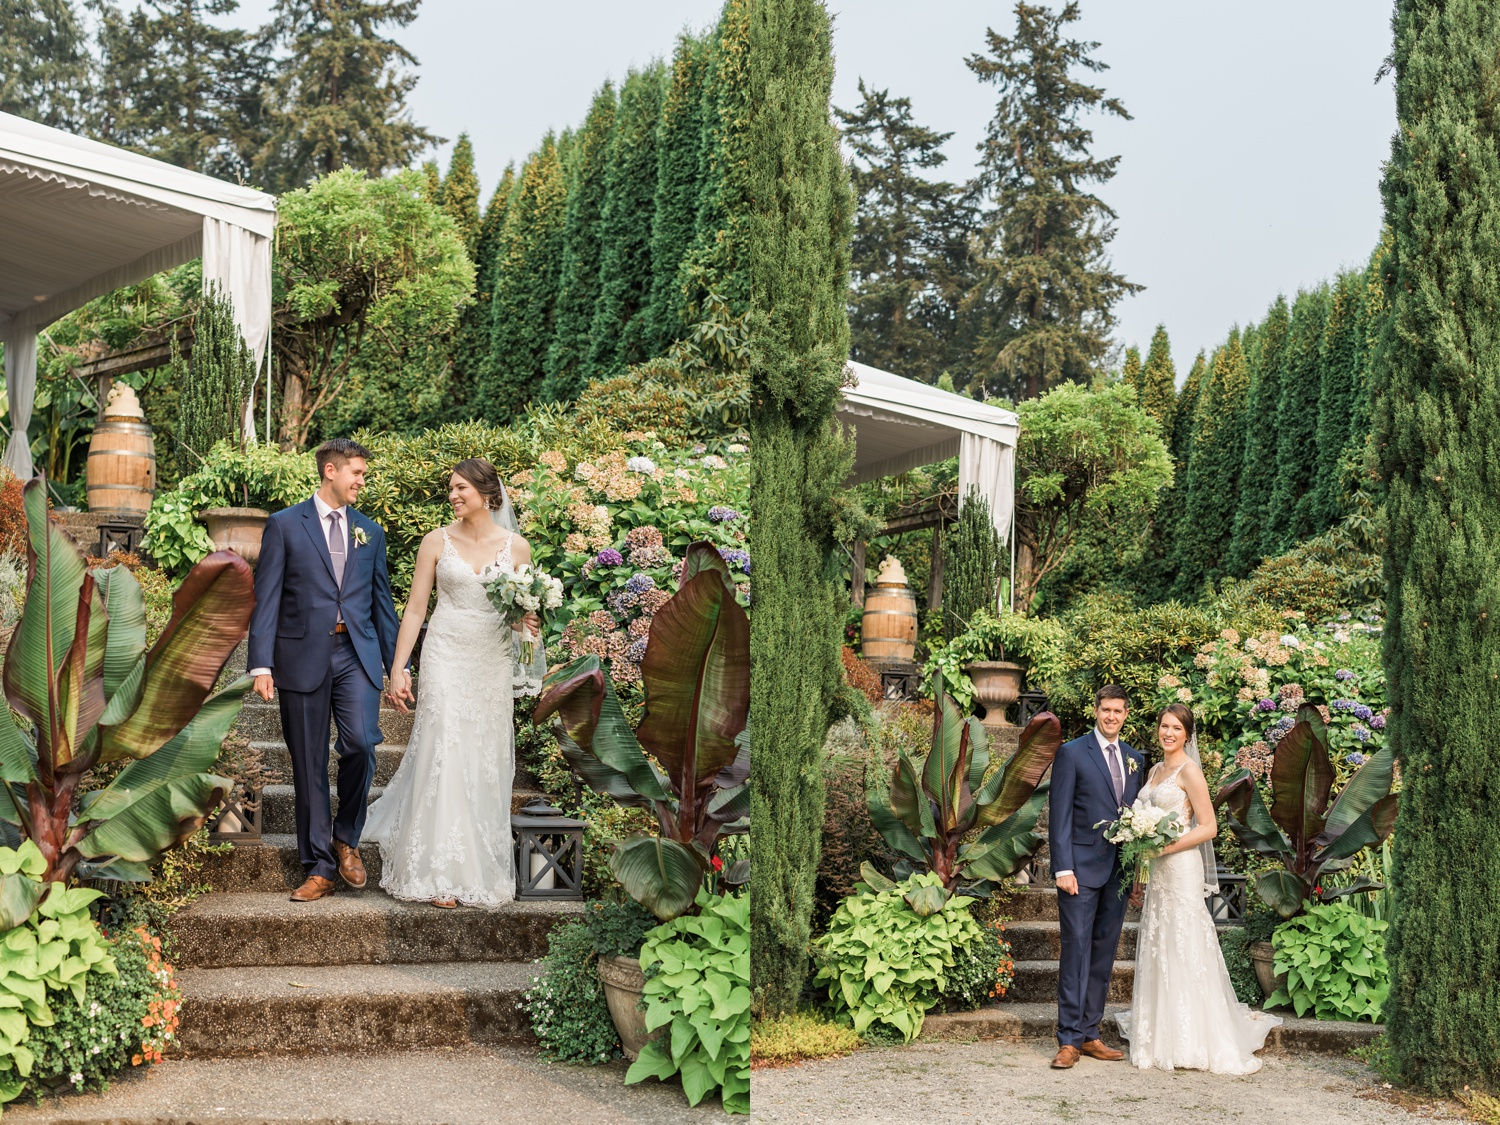 A bride and groom walk down the stairs of a beautiful garden before their wedding at Chateau Lill in Woodinville, a wedding venue near Seattle, WA. | Joanna Monger Photography | Seattle & Snohomish Photographer